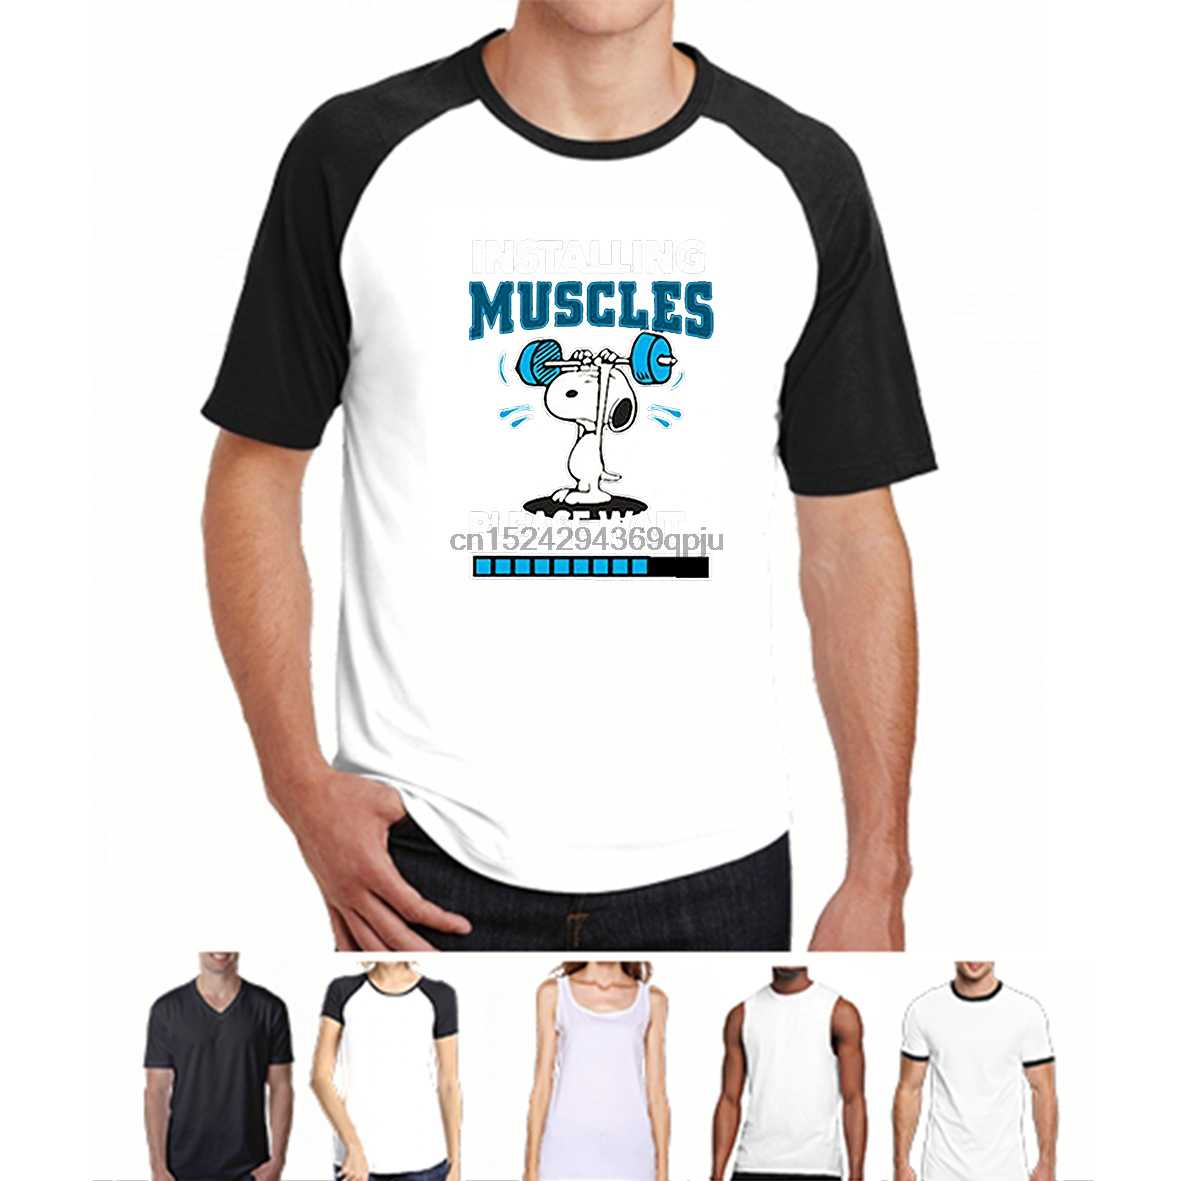 e484641c Men t shirt Installing Muscles Please Wait Snopy Peanuts Workout Training  Gym t-shirt novelty